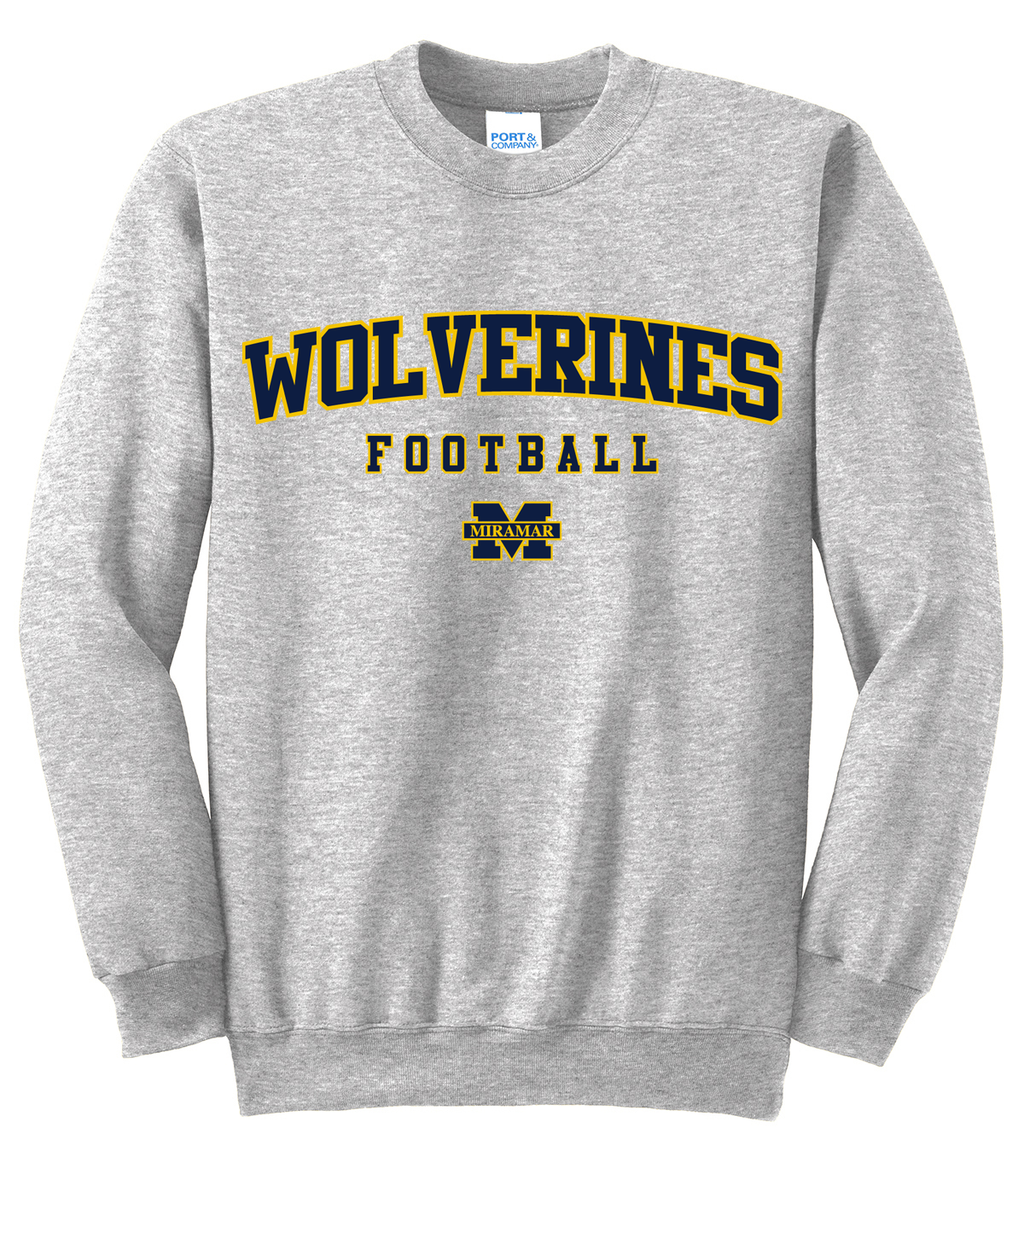 Miramar Wolverines Football Crew Neck Sweater